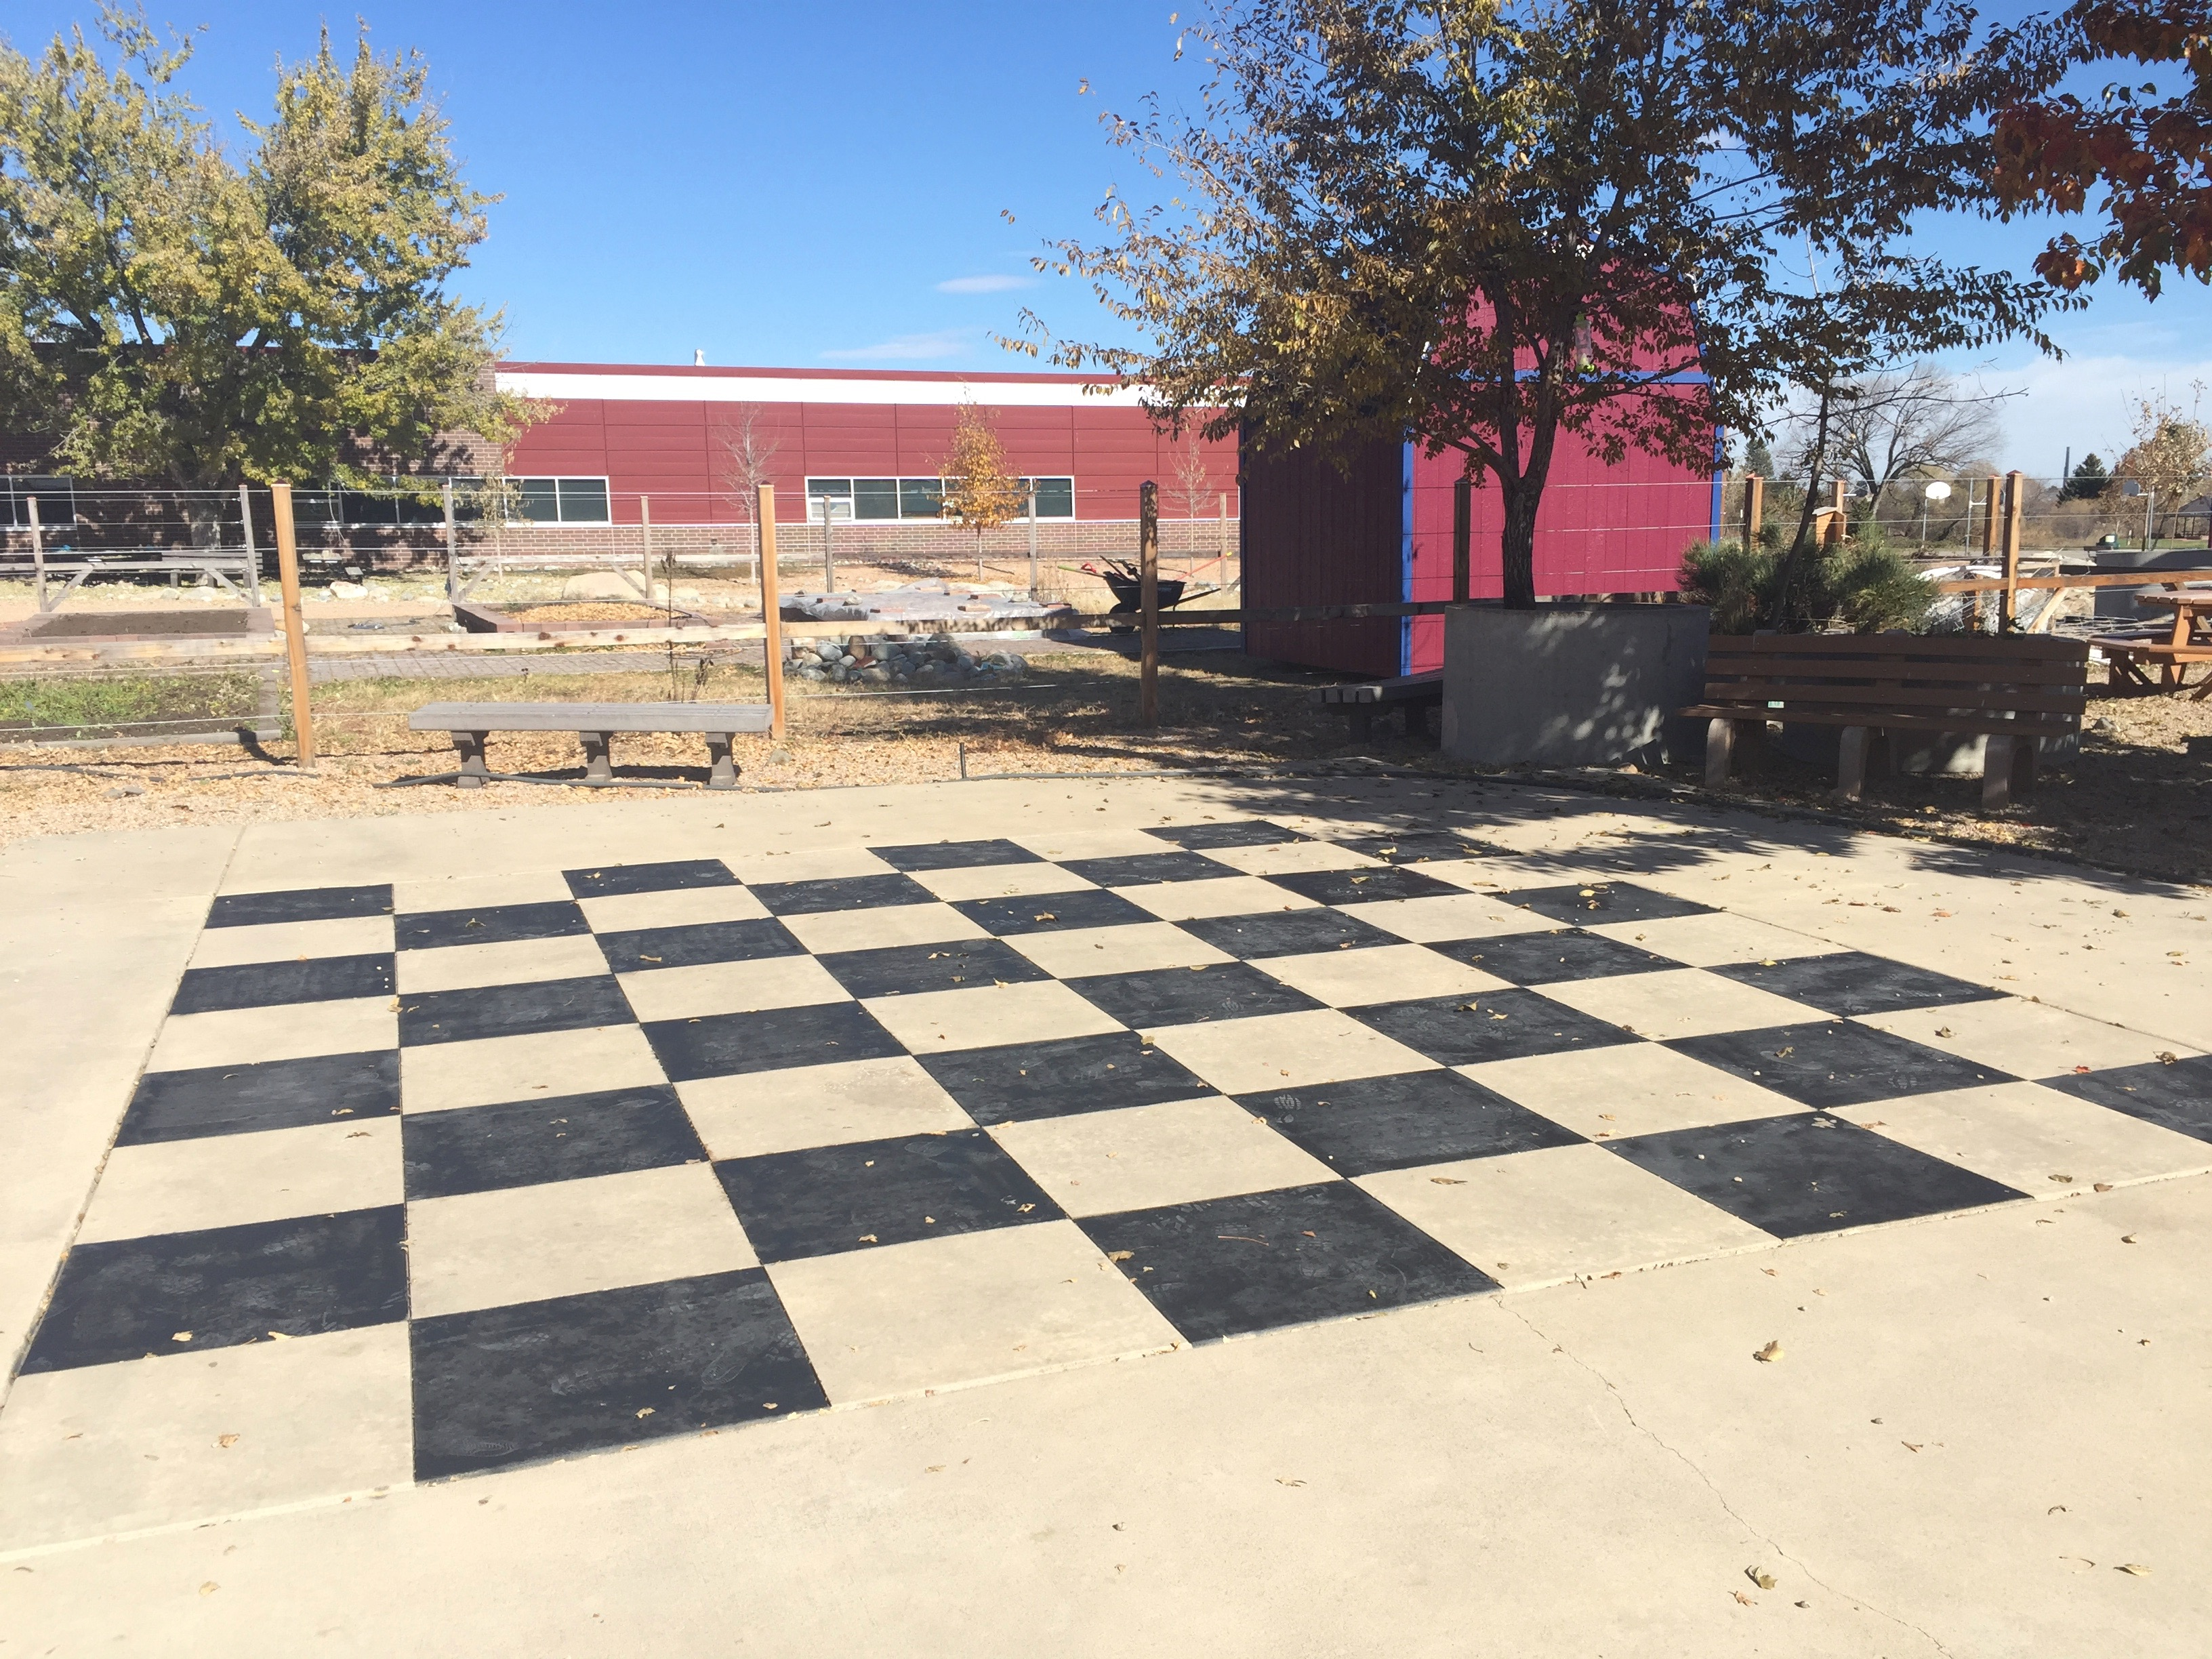 We have a new garden shed and checkerboard!